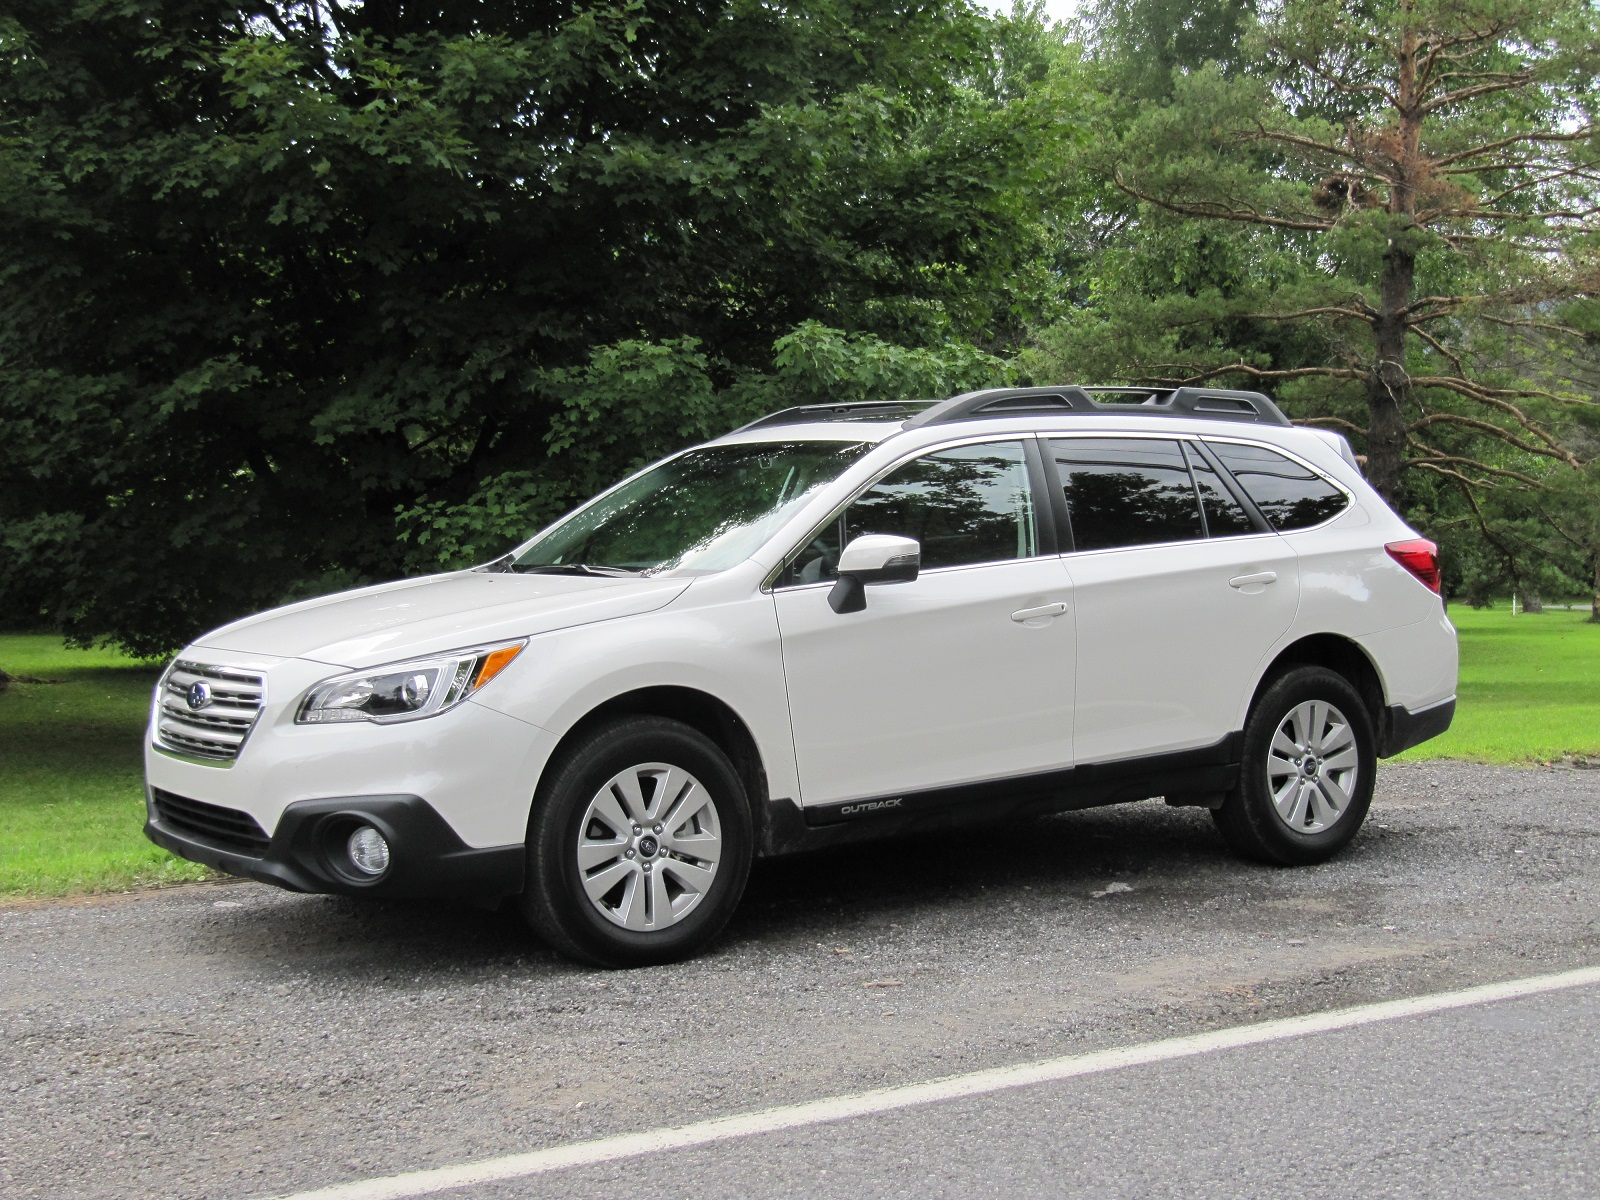 2015 Subaru Outback: Gas Mileage Review Of Crossover Wagon Utility